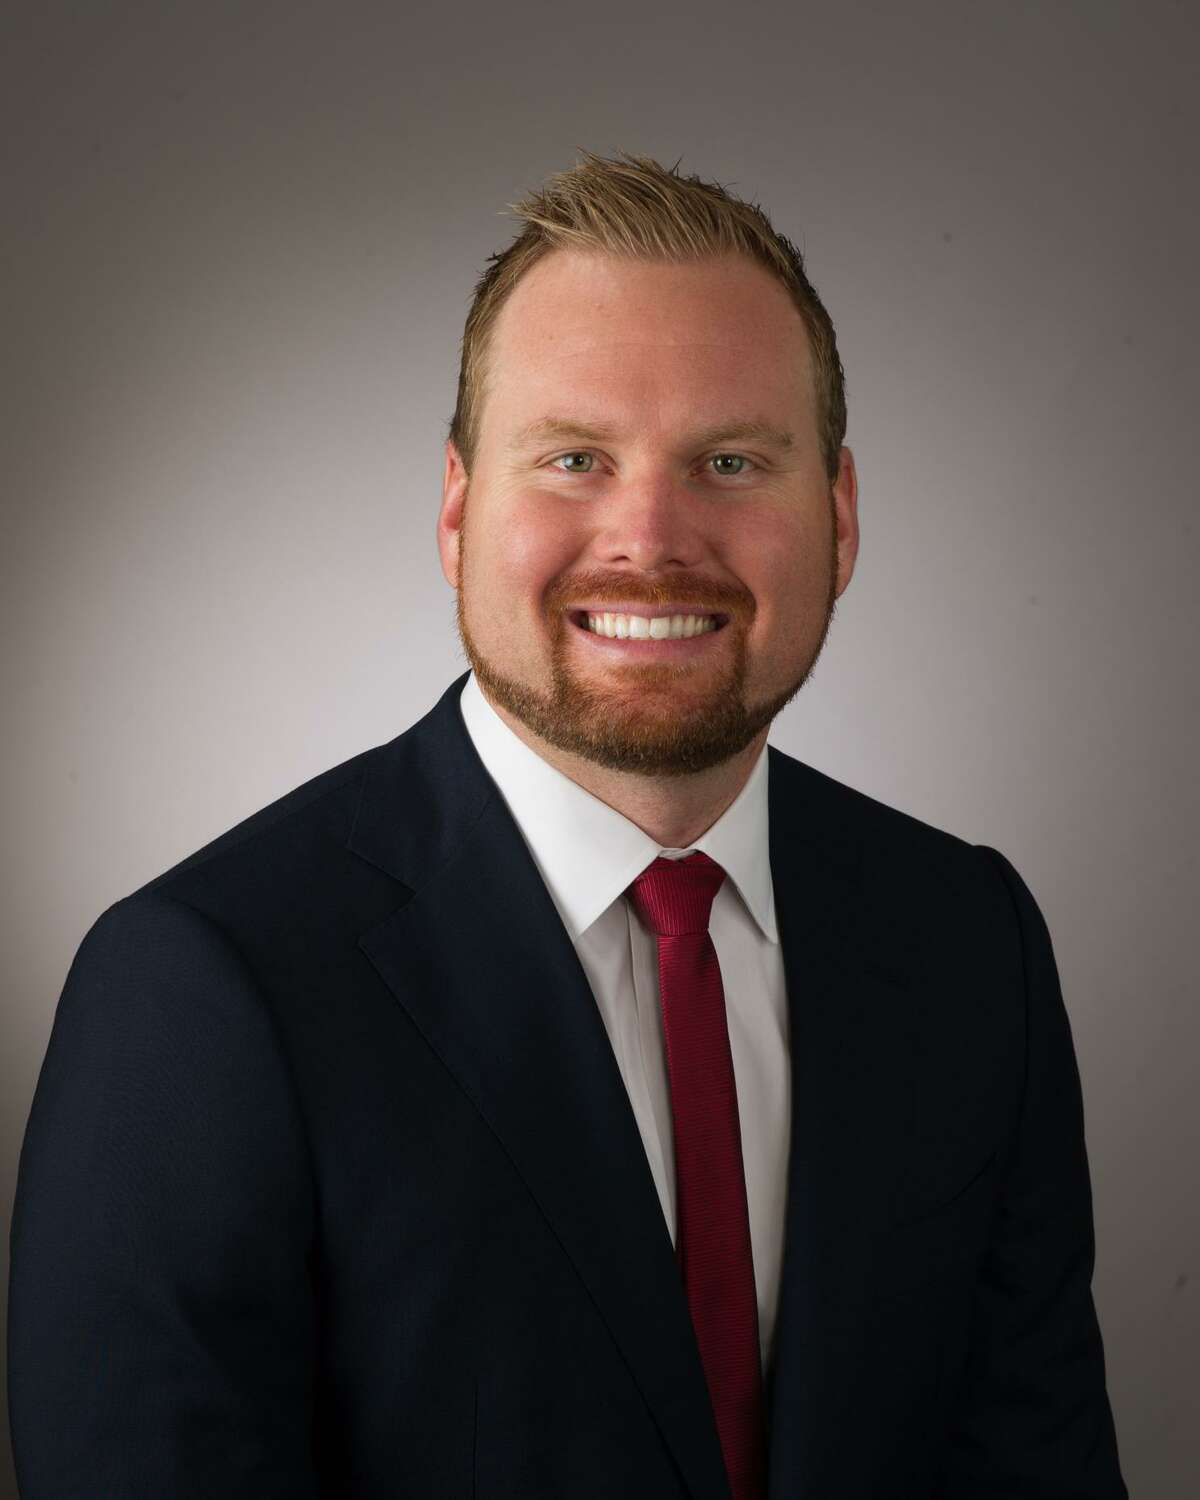 Justin Brasell has been appointed executive vice president at Transwestern to lead the company?'s healthcare advisory services team in Houston.